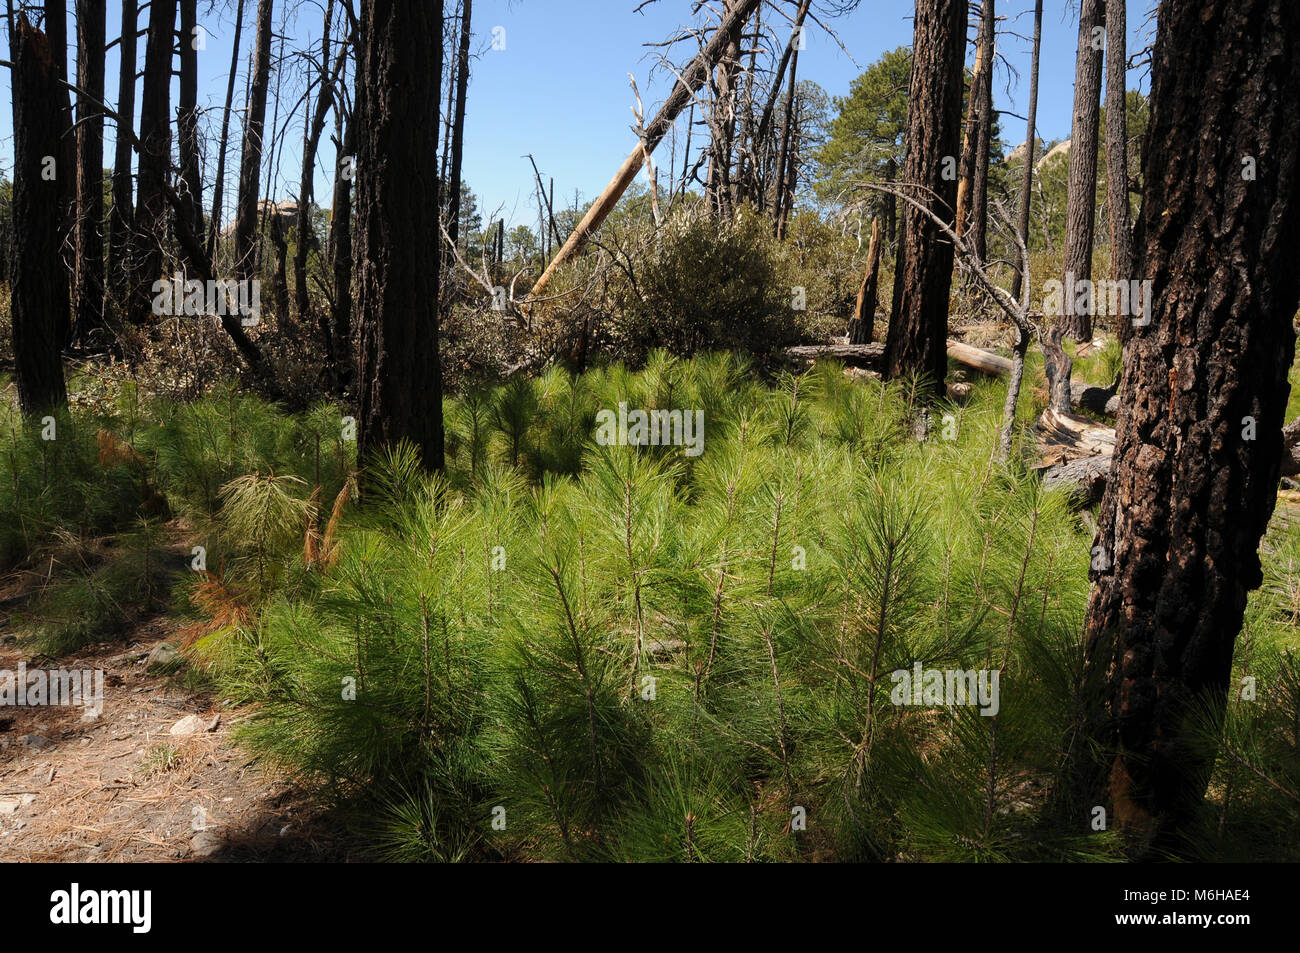 New growth of pines, ferns and other plants emerges from the forest floor following the Aspen Fire, Arizona Trail, - Stock Image